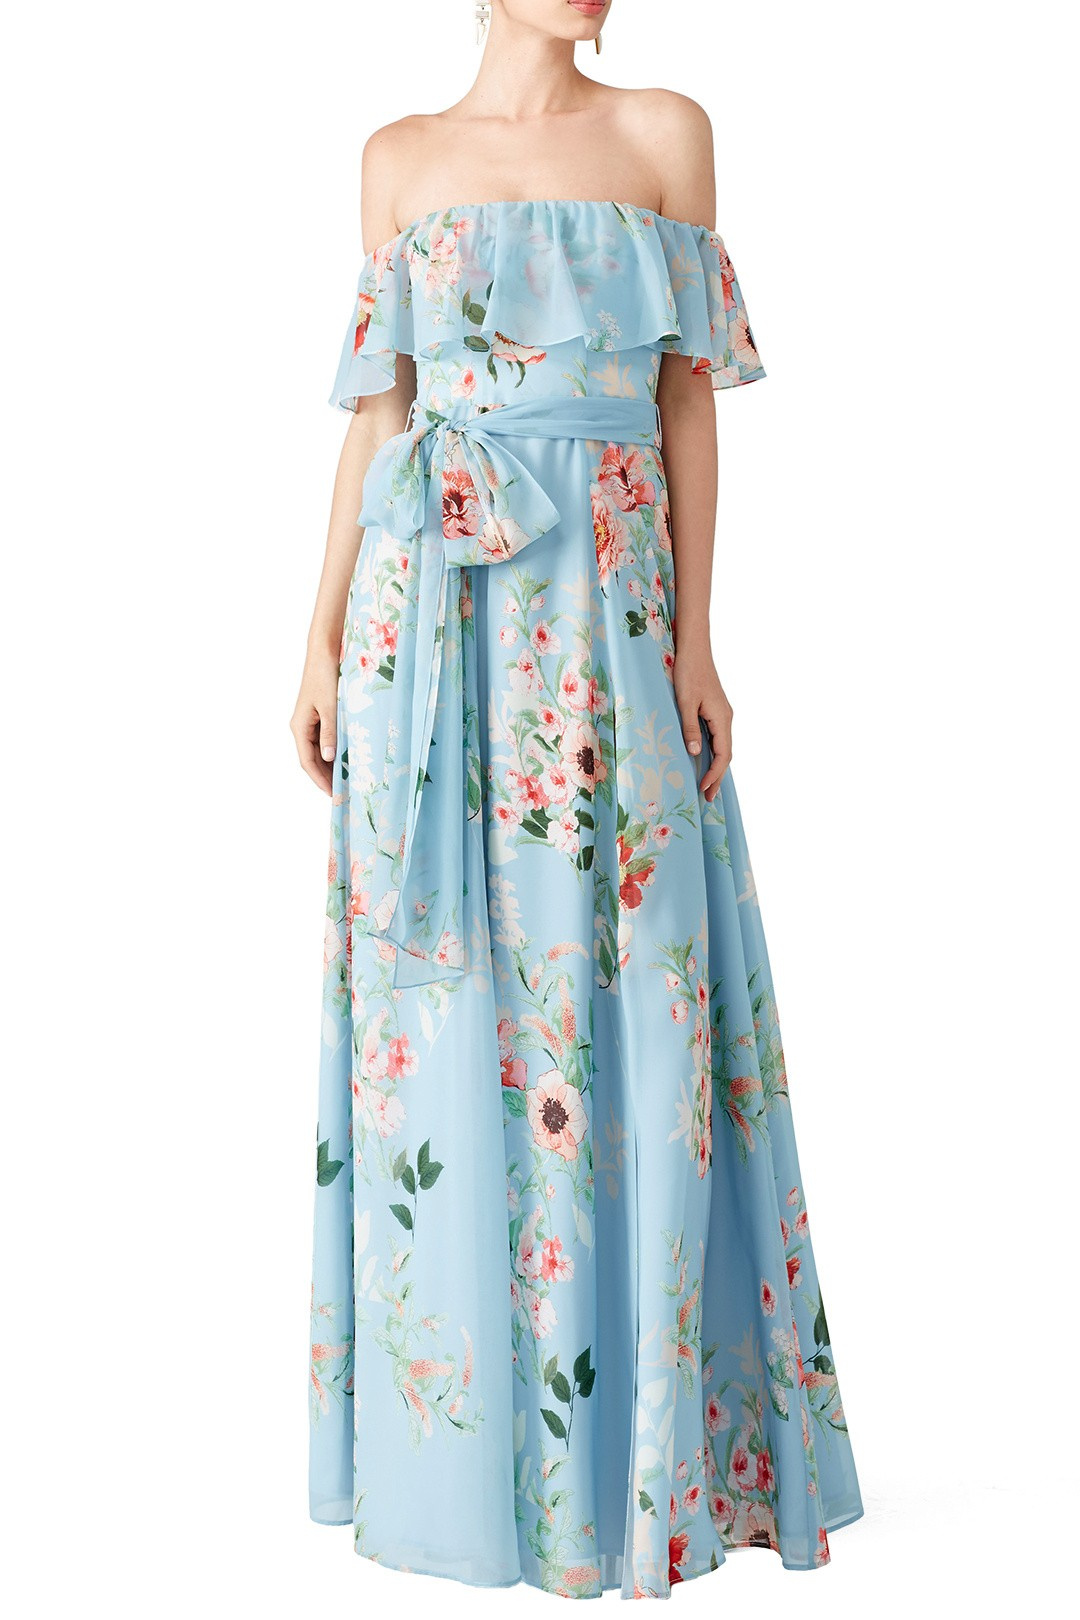 Maxi dresses for wedding guests current favorite elegant maxi dresses for wedding guests ombrellifo Gallery